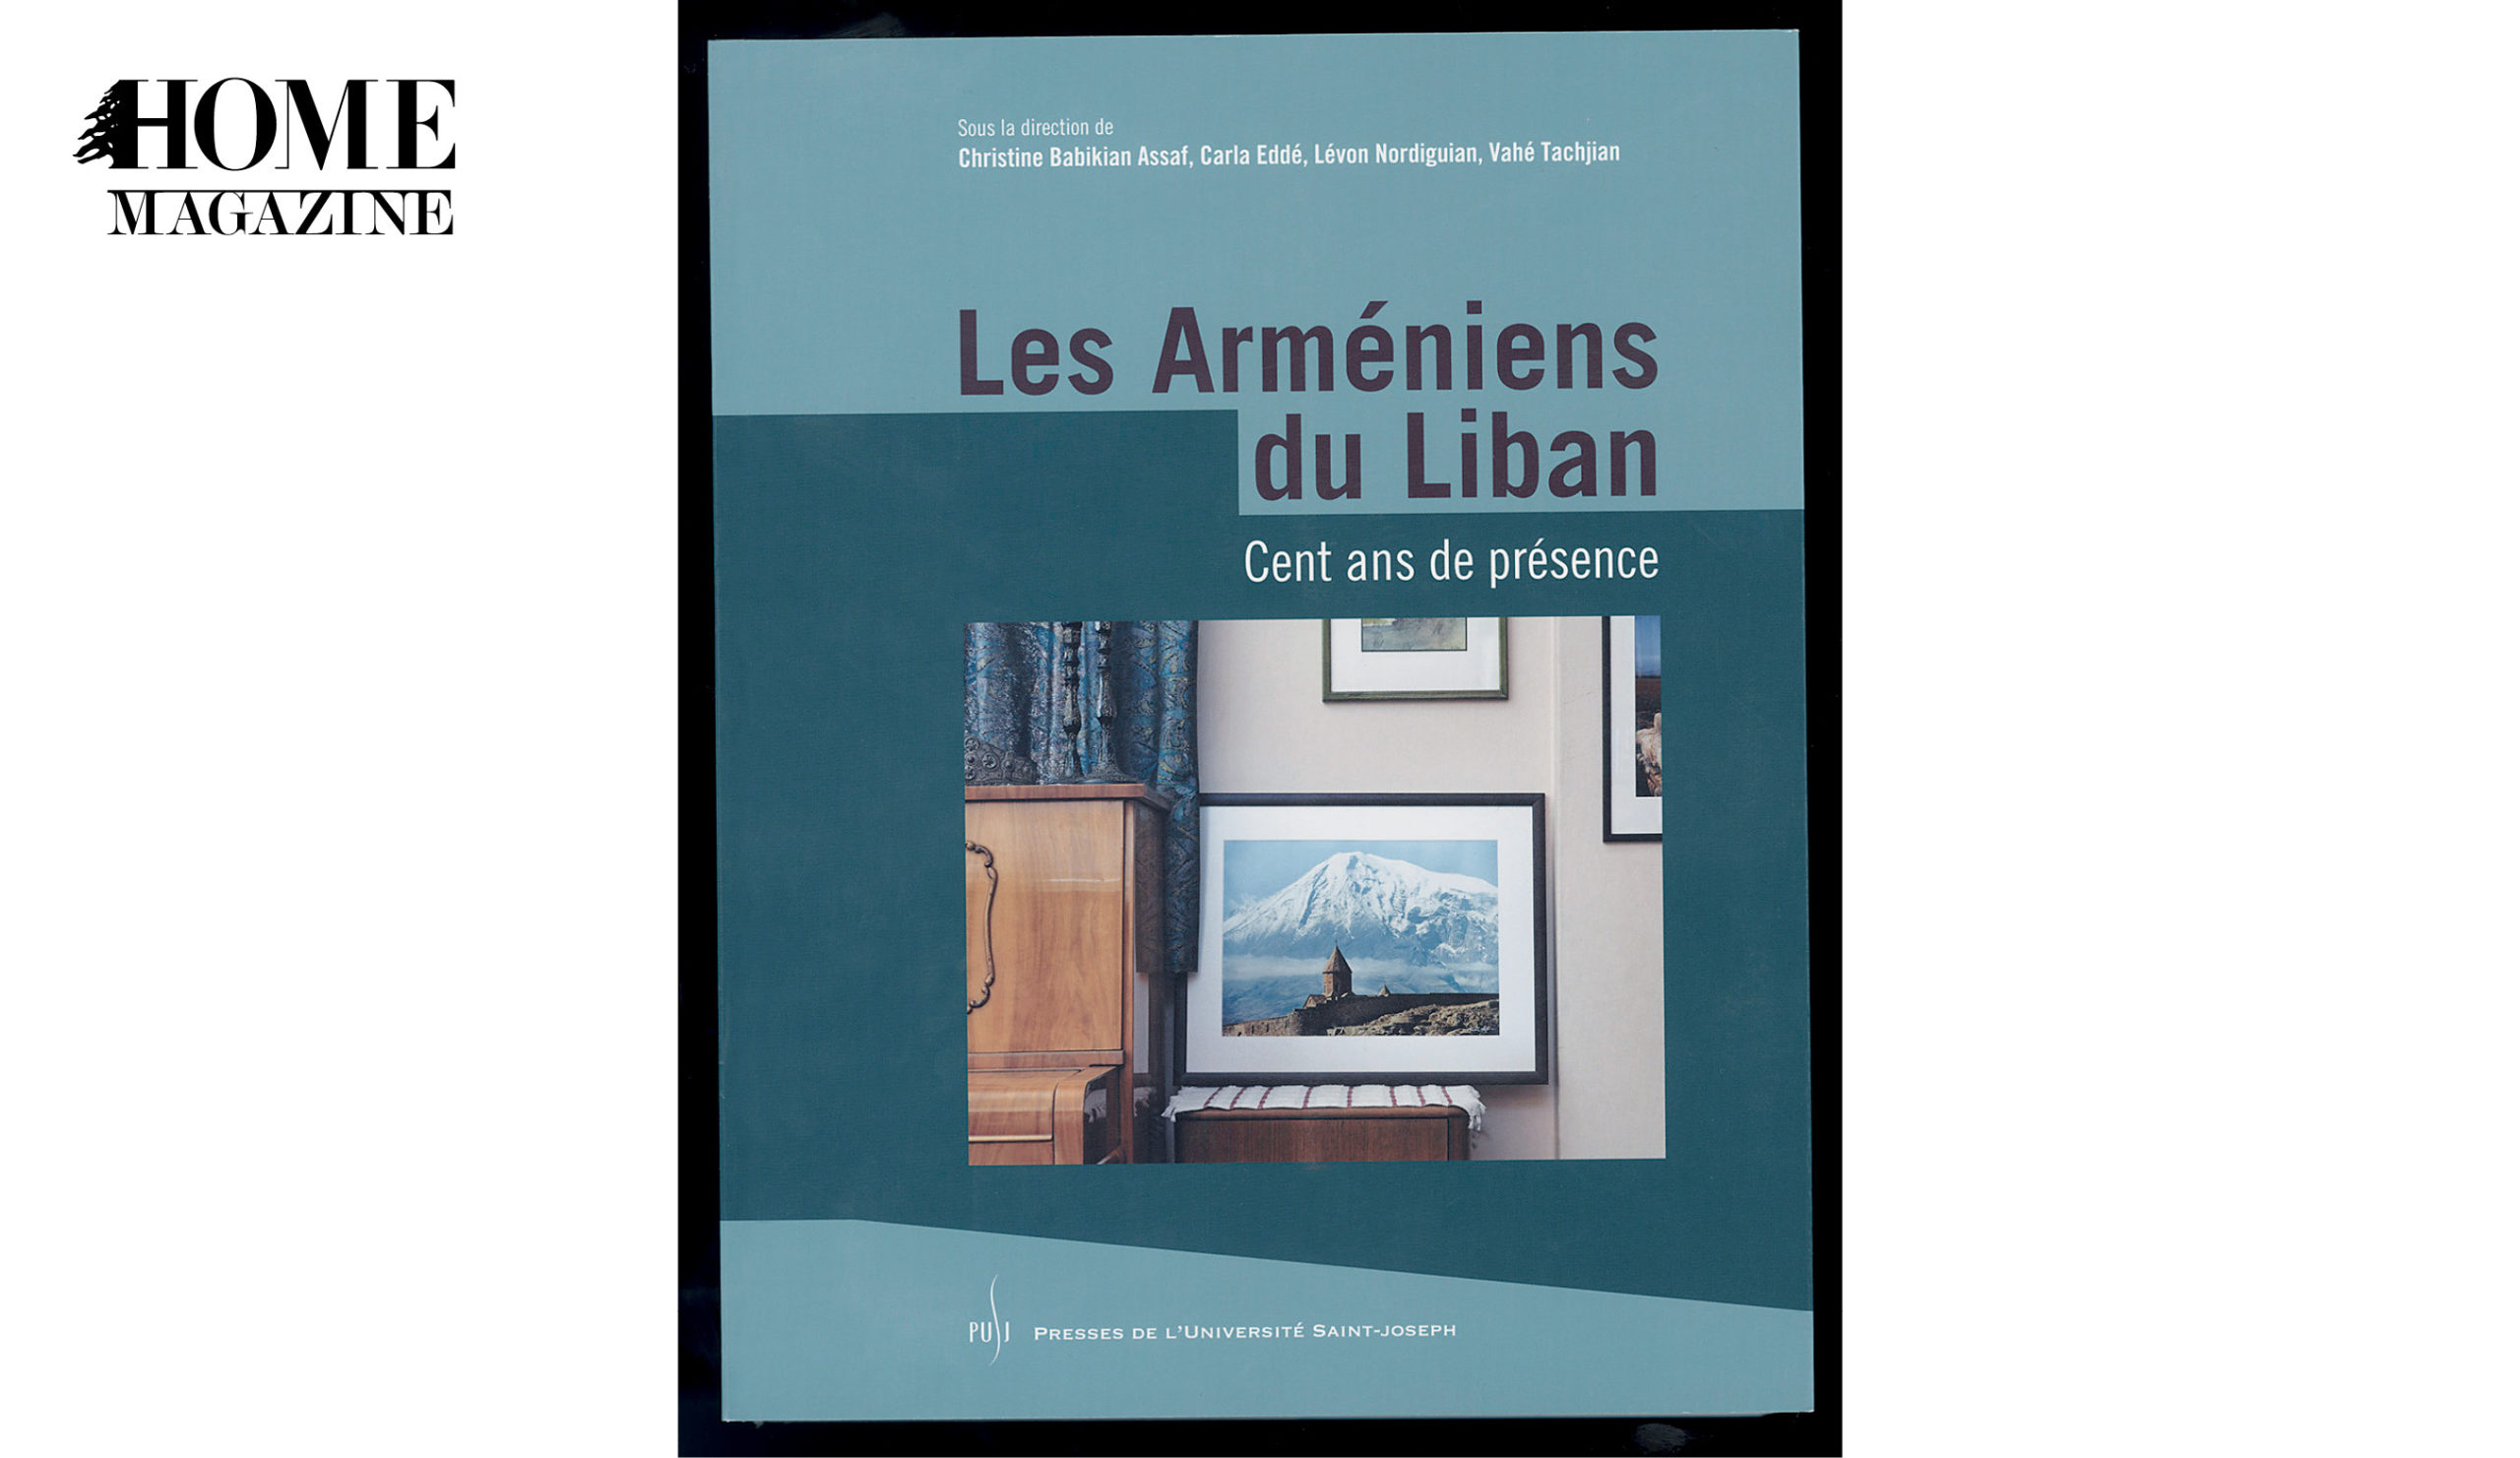 Book with blue cover titles Les Armeniens du Liban